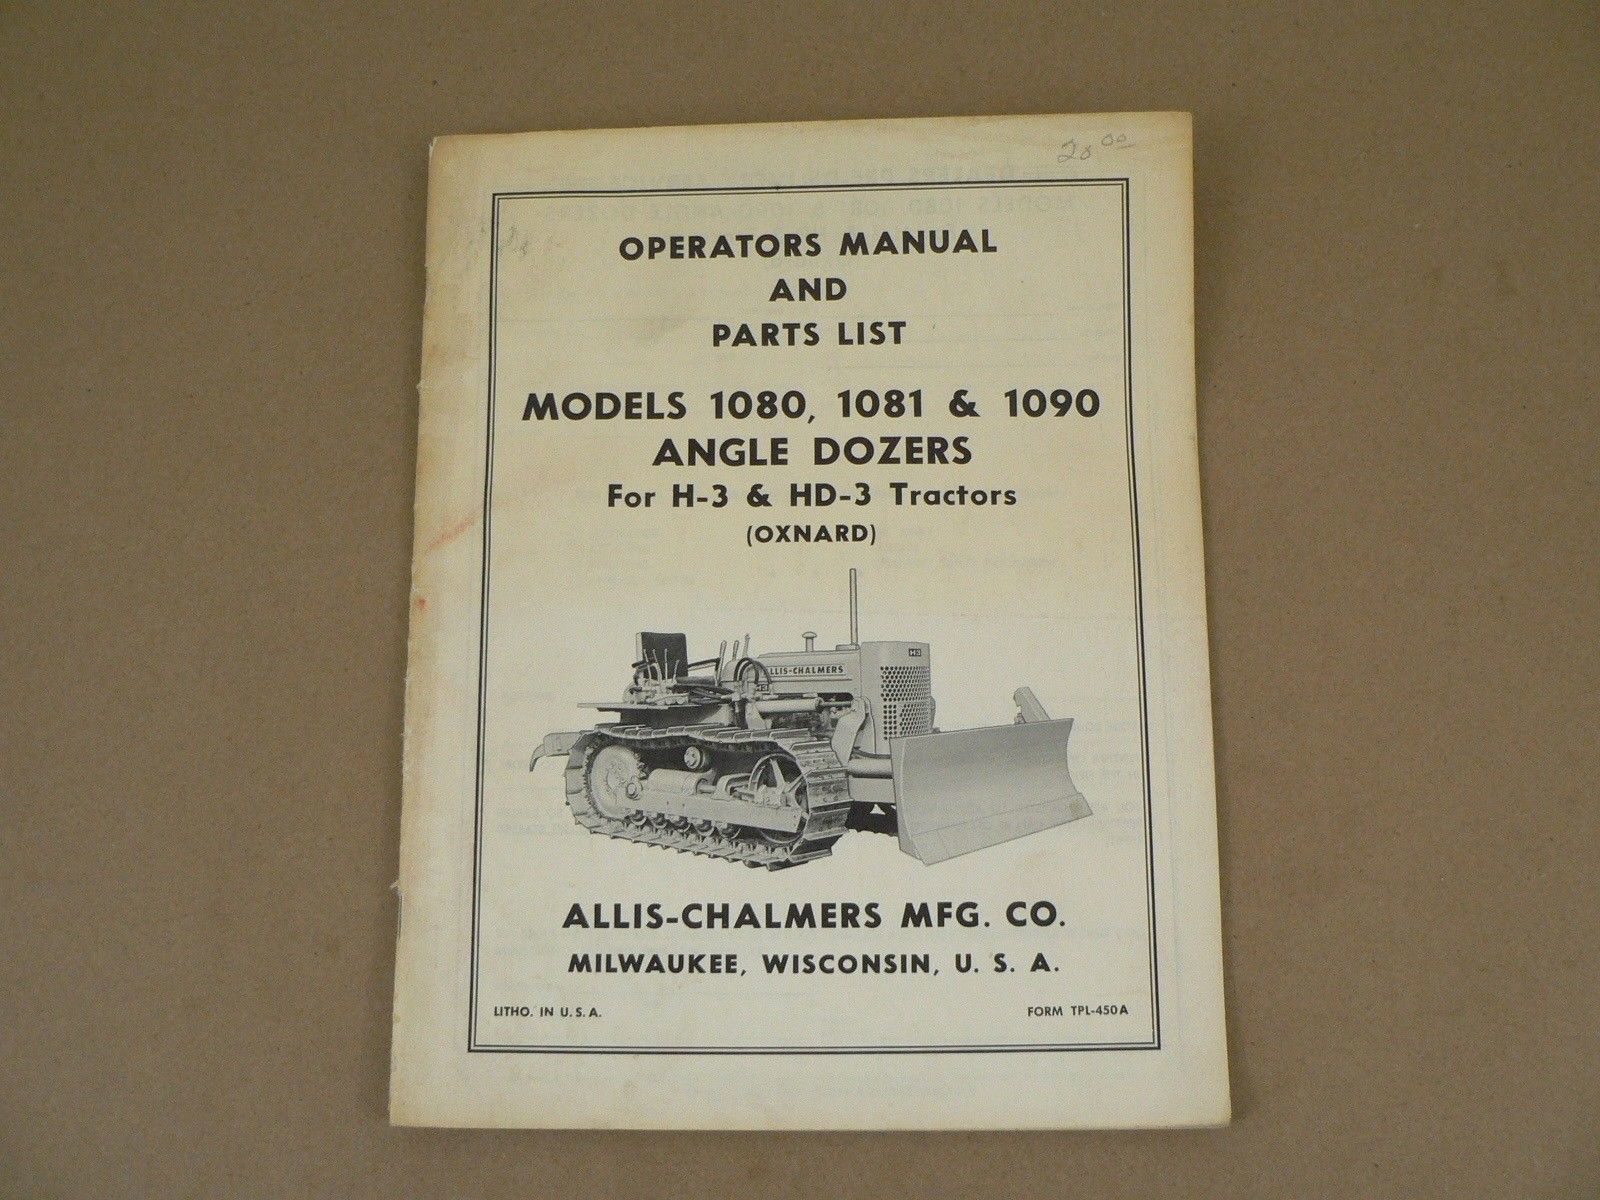 Allis Chalmers 1080 1081 1090 Angle Dozers and 29 similar items